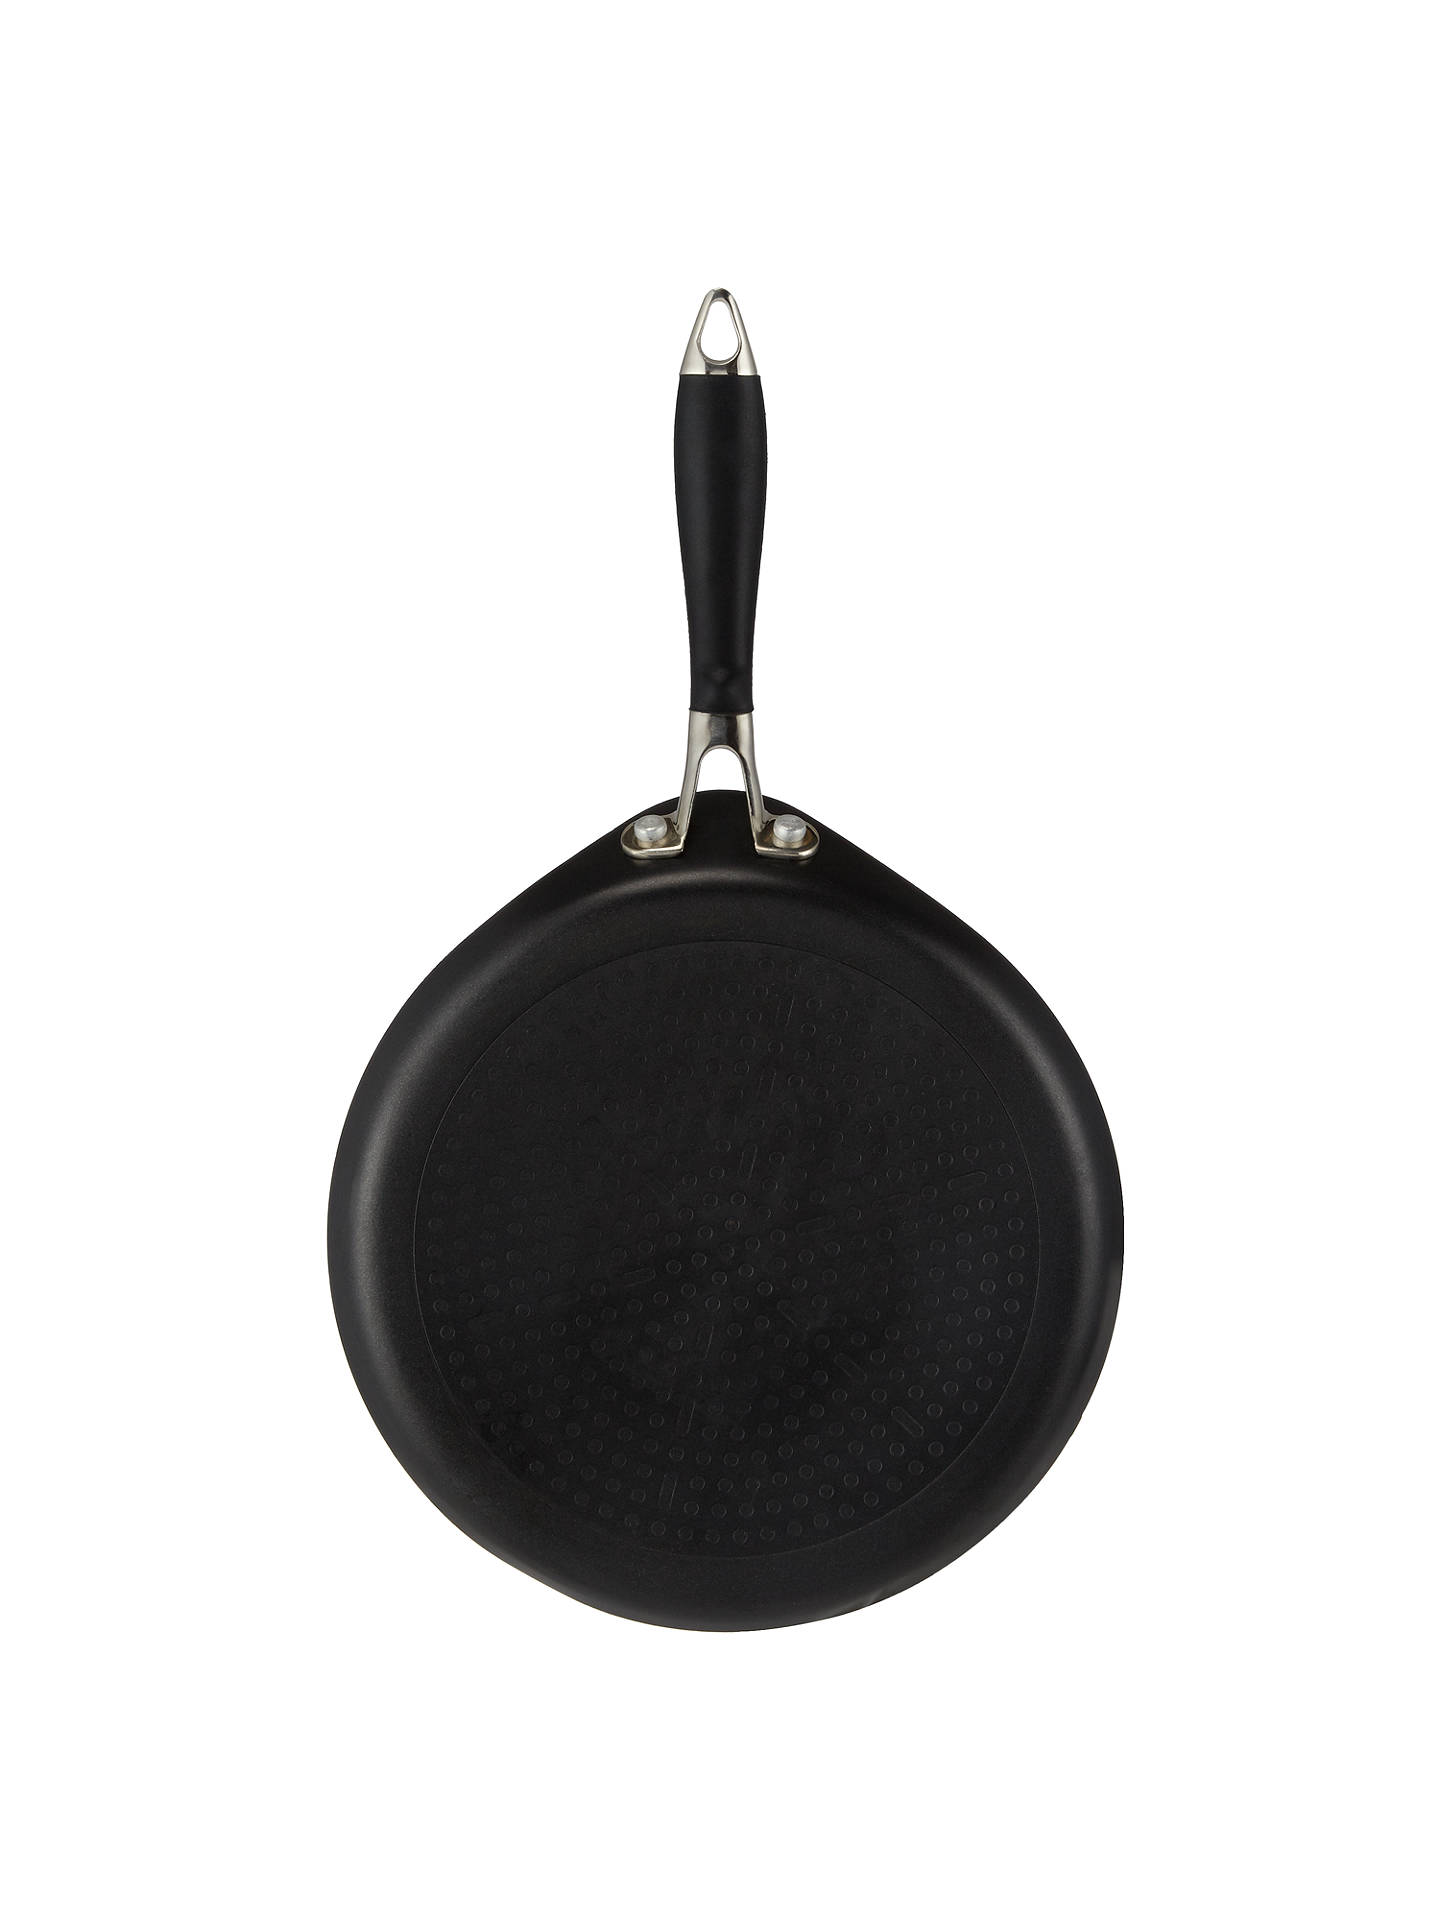 Buy John Lewis & Partners 'The Pan' Aluminium Non-Stick Pancake/Crepe Pan, 24cm Online at johnlewis.com